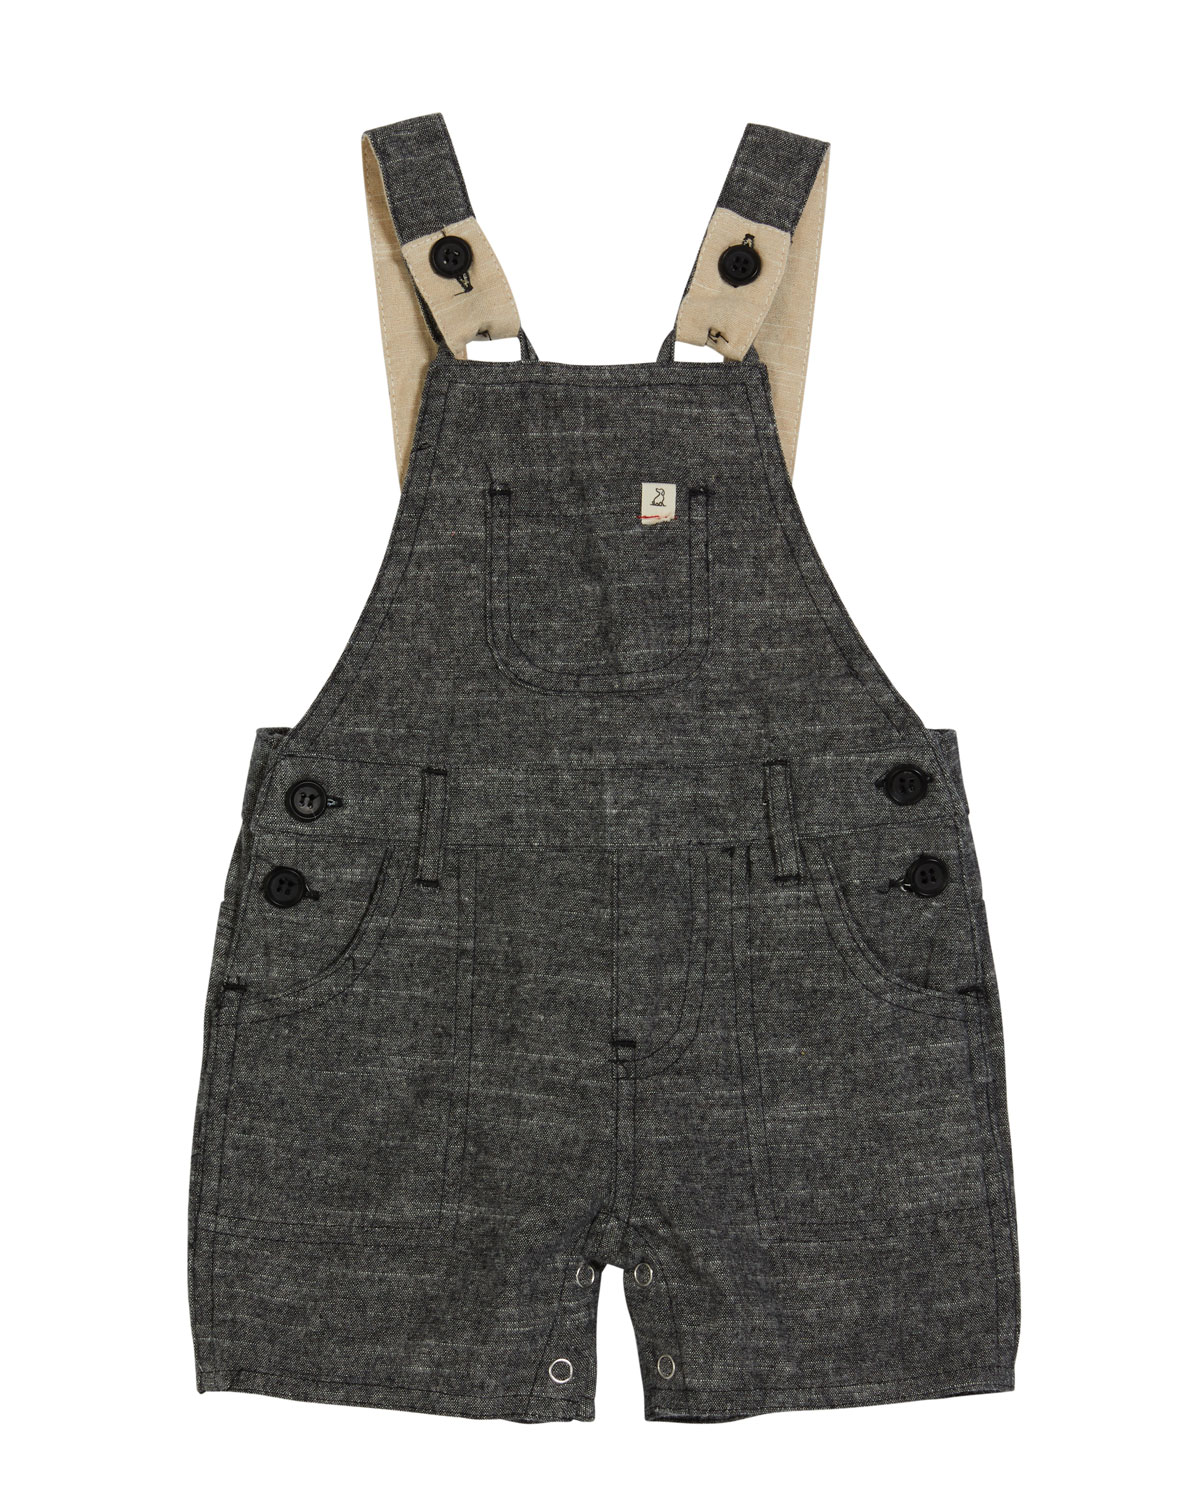 Me & Henry Jumpsuits BOY'S WOVEN COTTON OVERALLS W/ CHILDREN'S BOOK